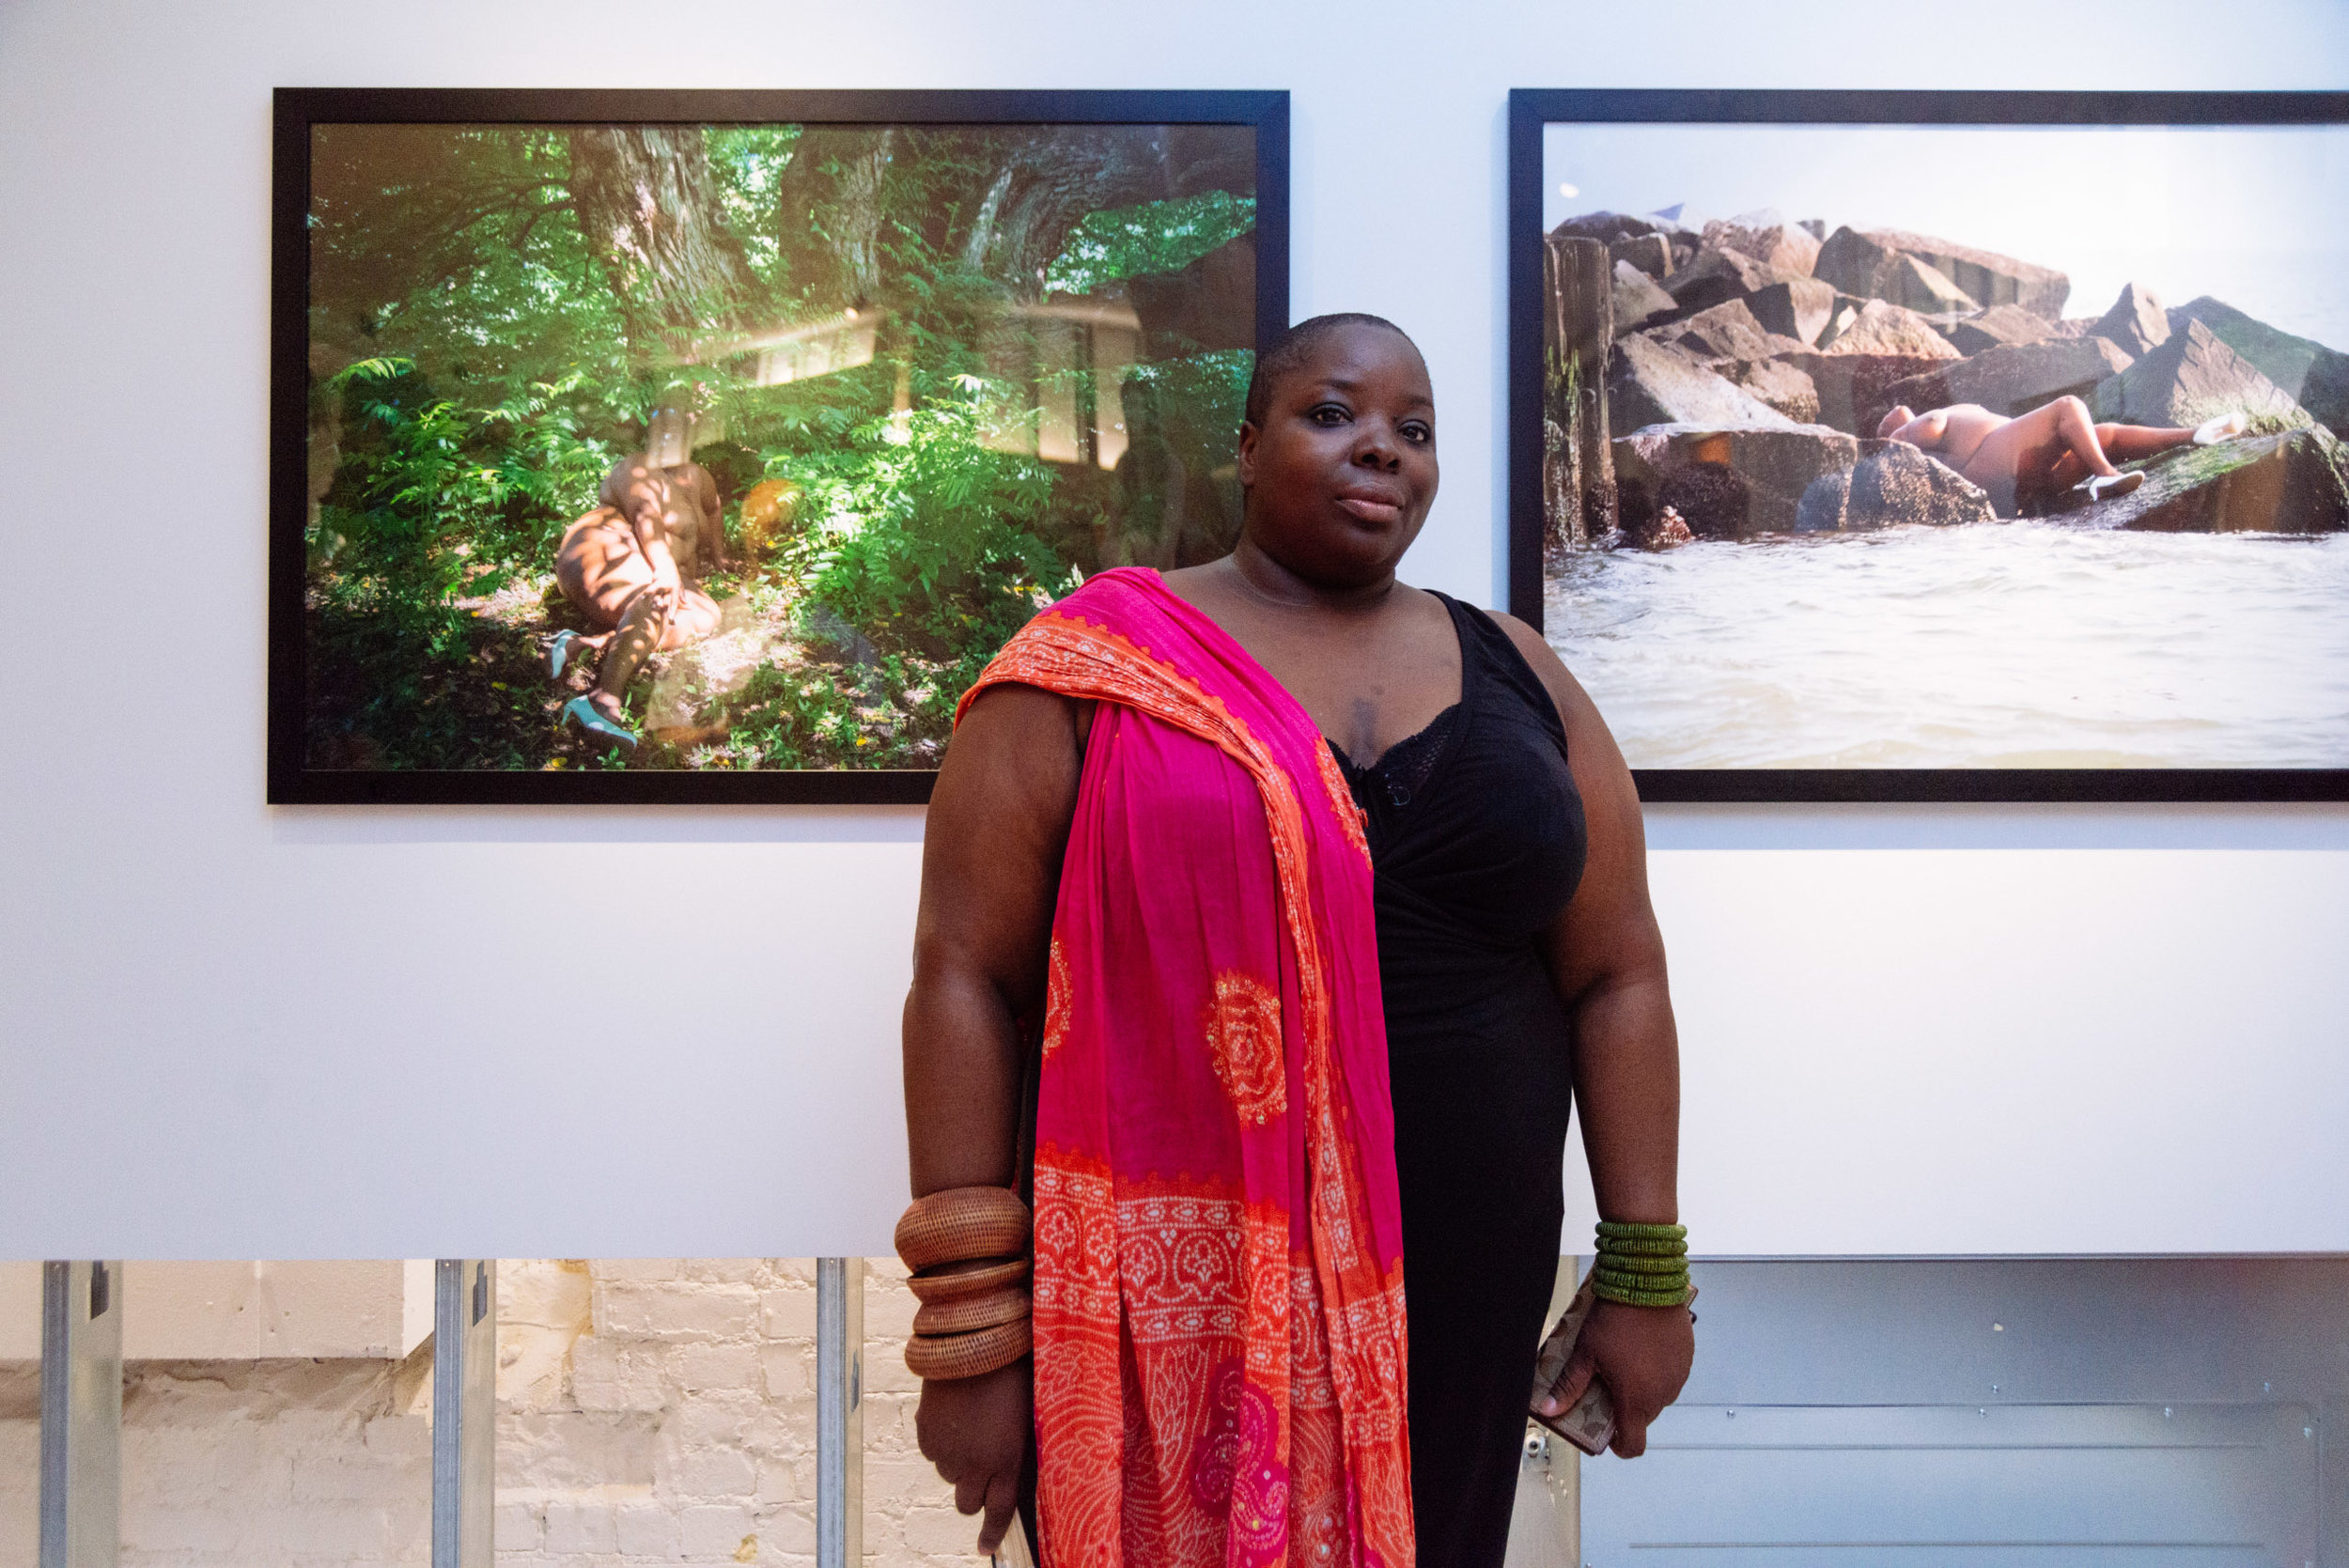 Photo of Nona Faustine by Charlie Rubin